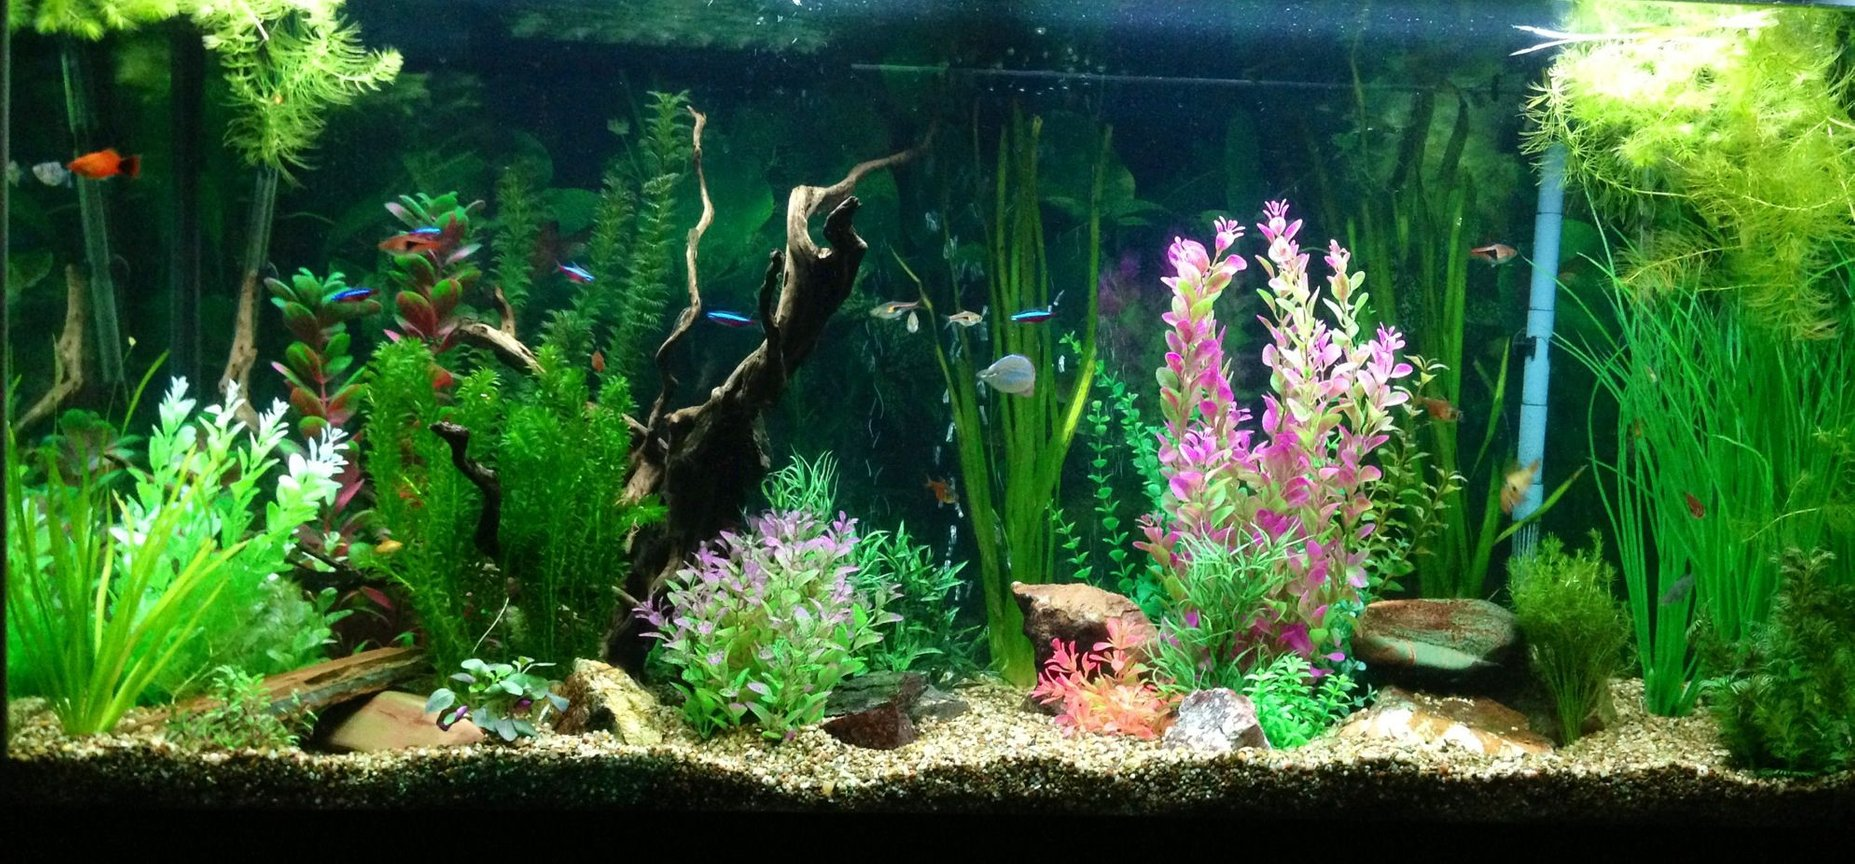 90 gallons freshwater fish tank (mostly fish and non-living decorations) - My tank